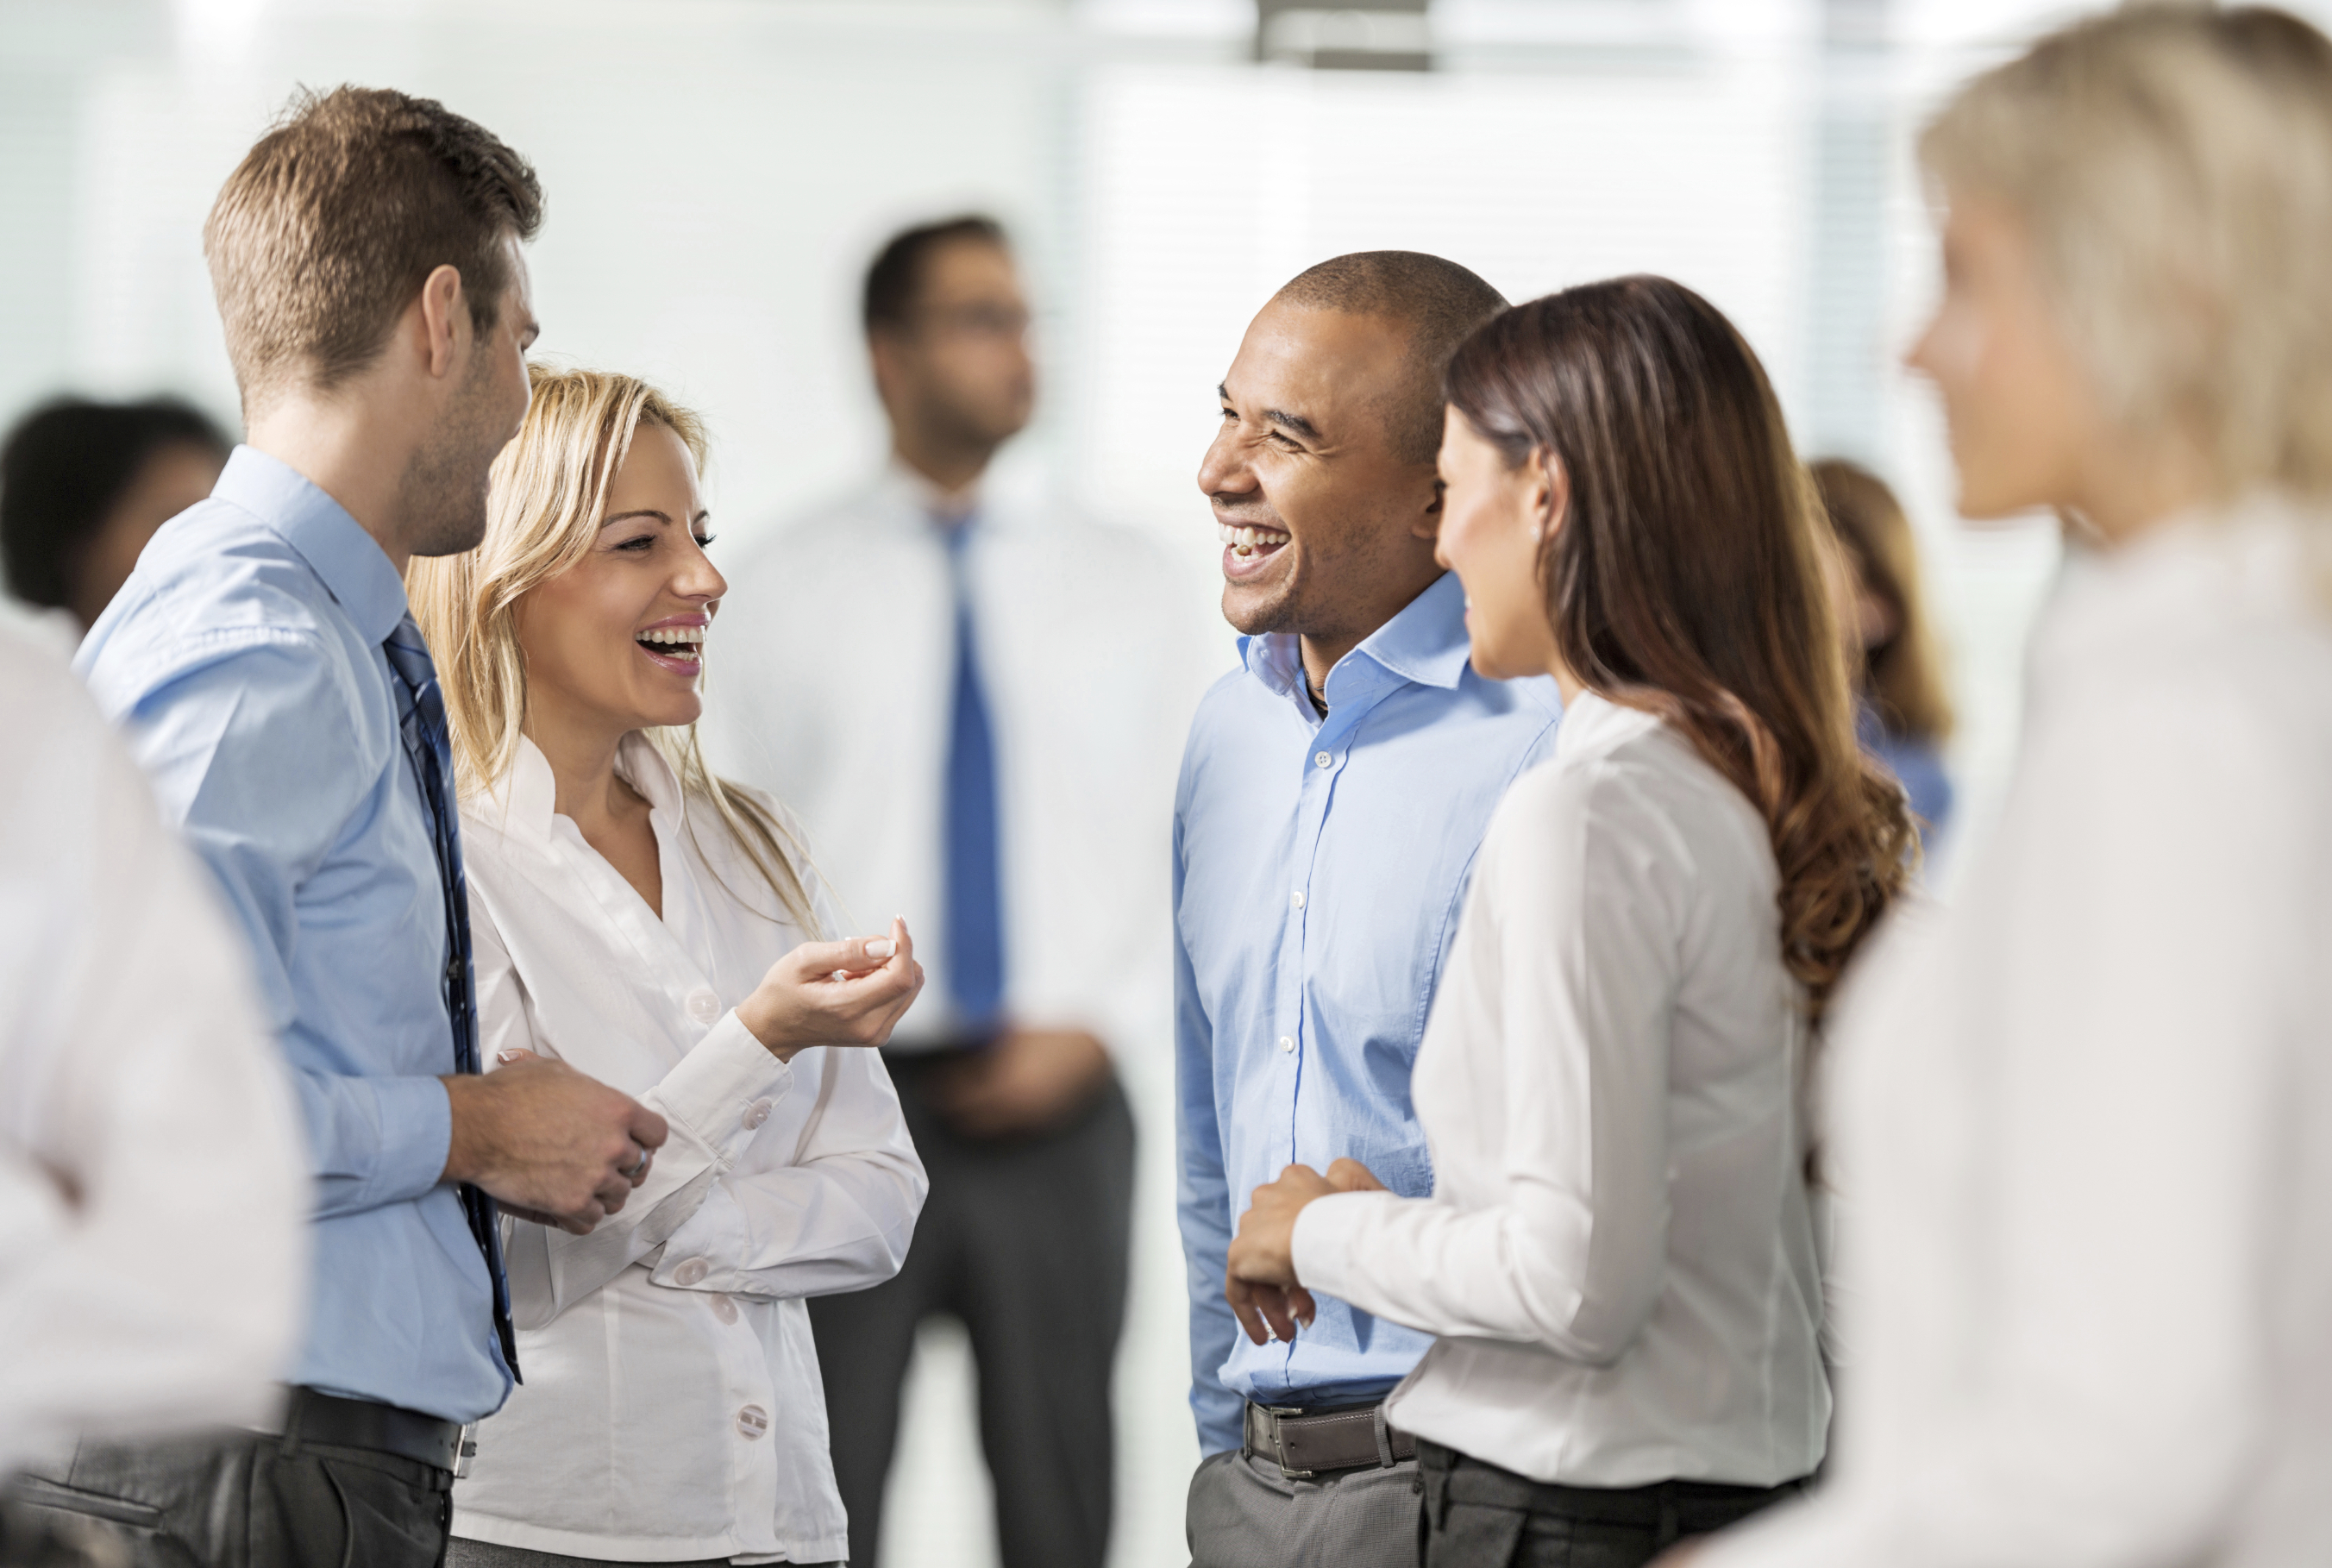 Cheerful group of business people standing together and communicating. [url=http://www.istockphoto.com/search/lightbox/9786622][img]http://dl.dropbox.com/u/40117171/business.jpg[/img][/url] [url=http://www.istockphoto.com/search/lightbox/9786738][img]http://dl.dropbox.com/u/40117171/group.jpg[/img][/url]